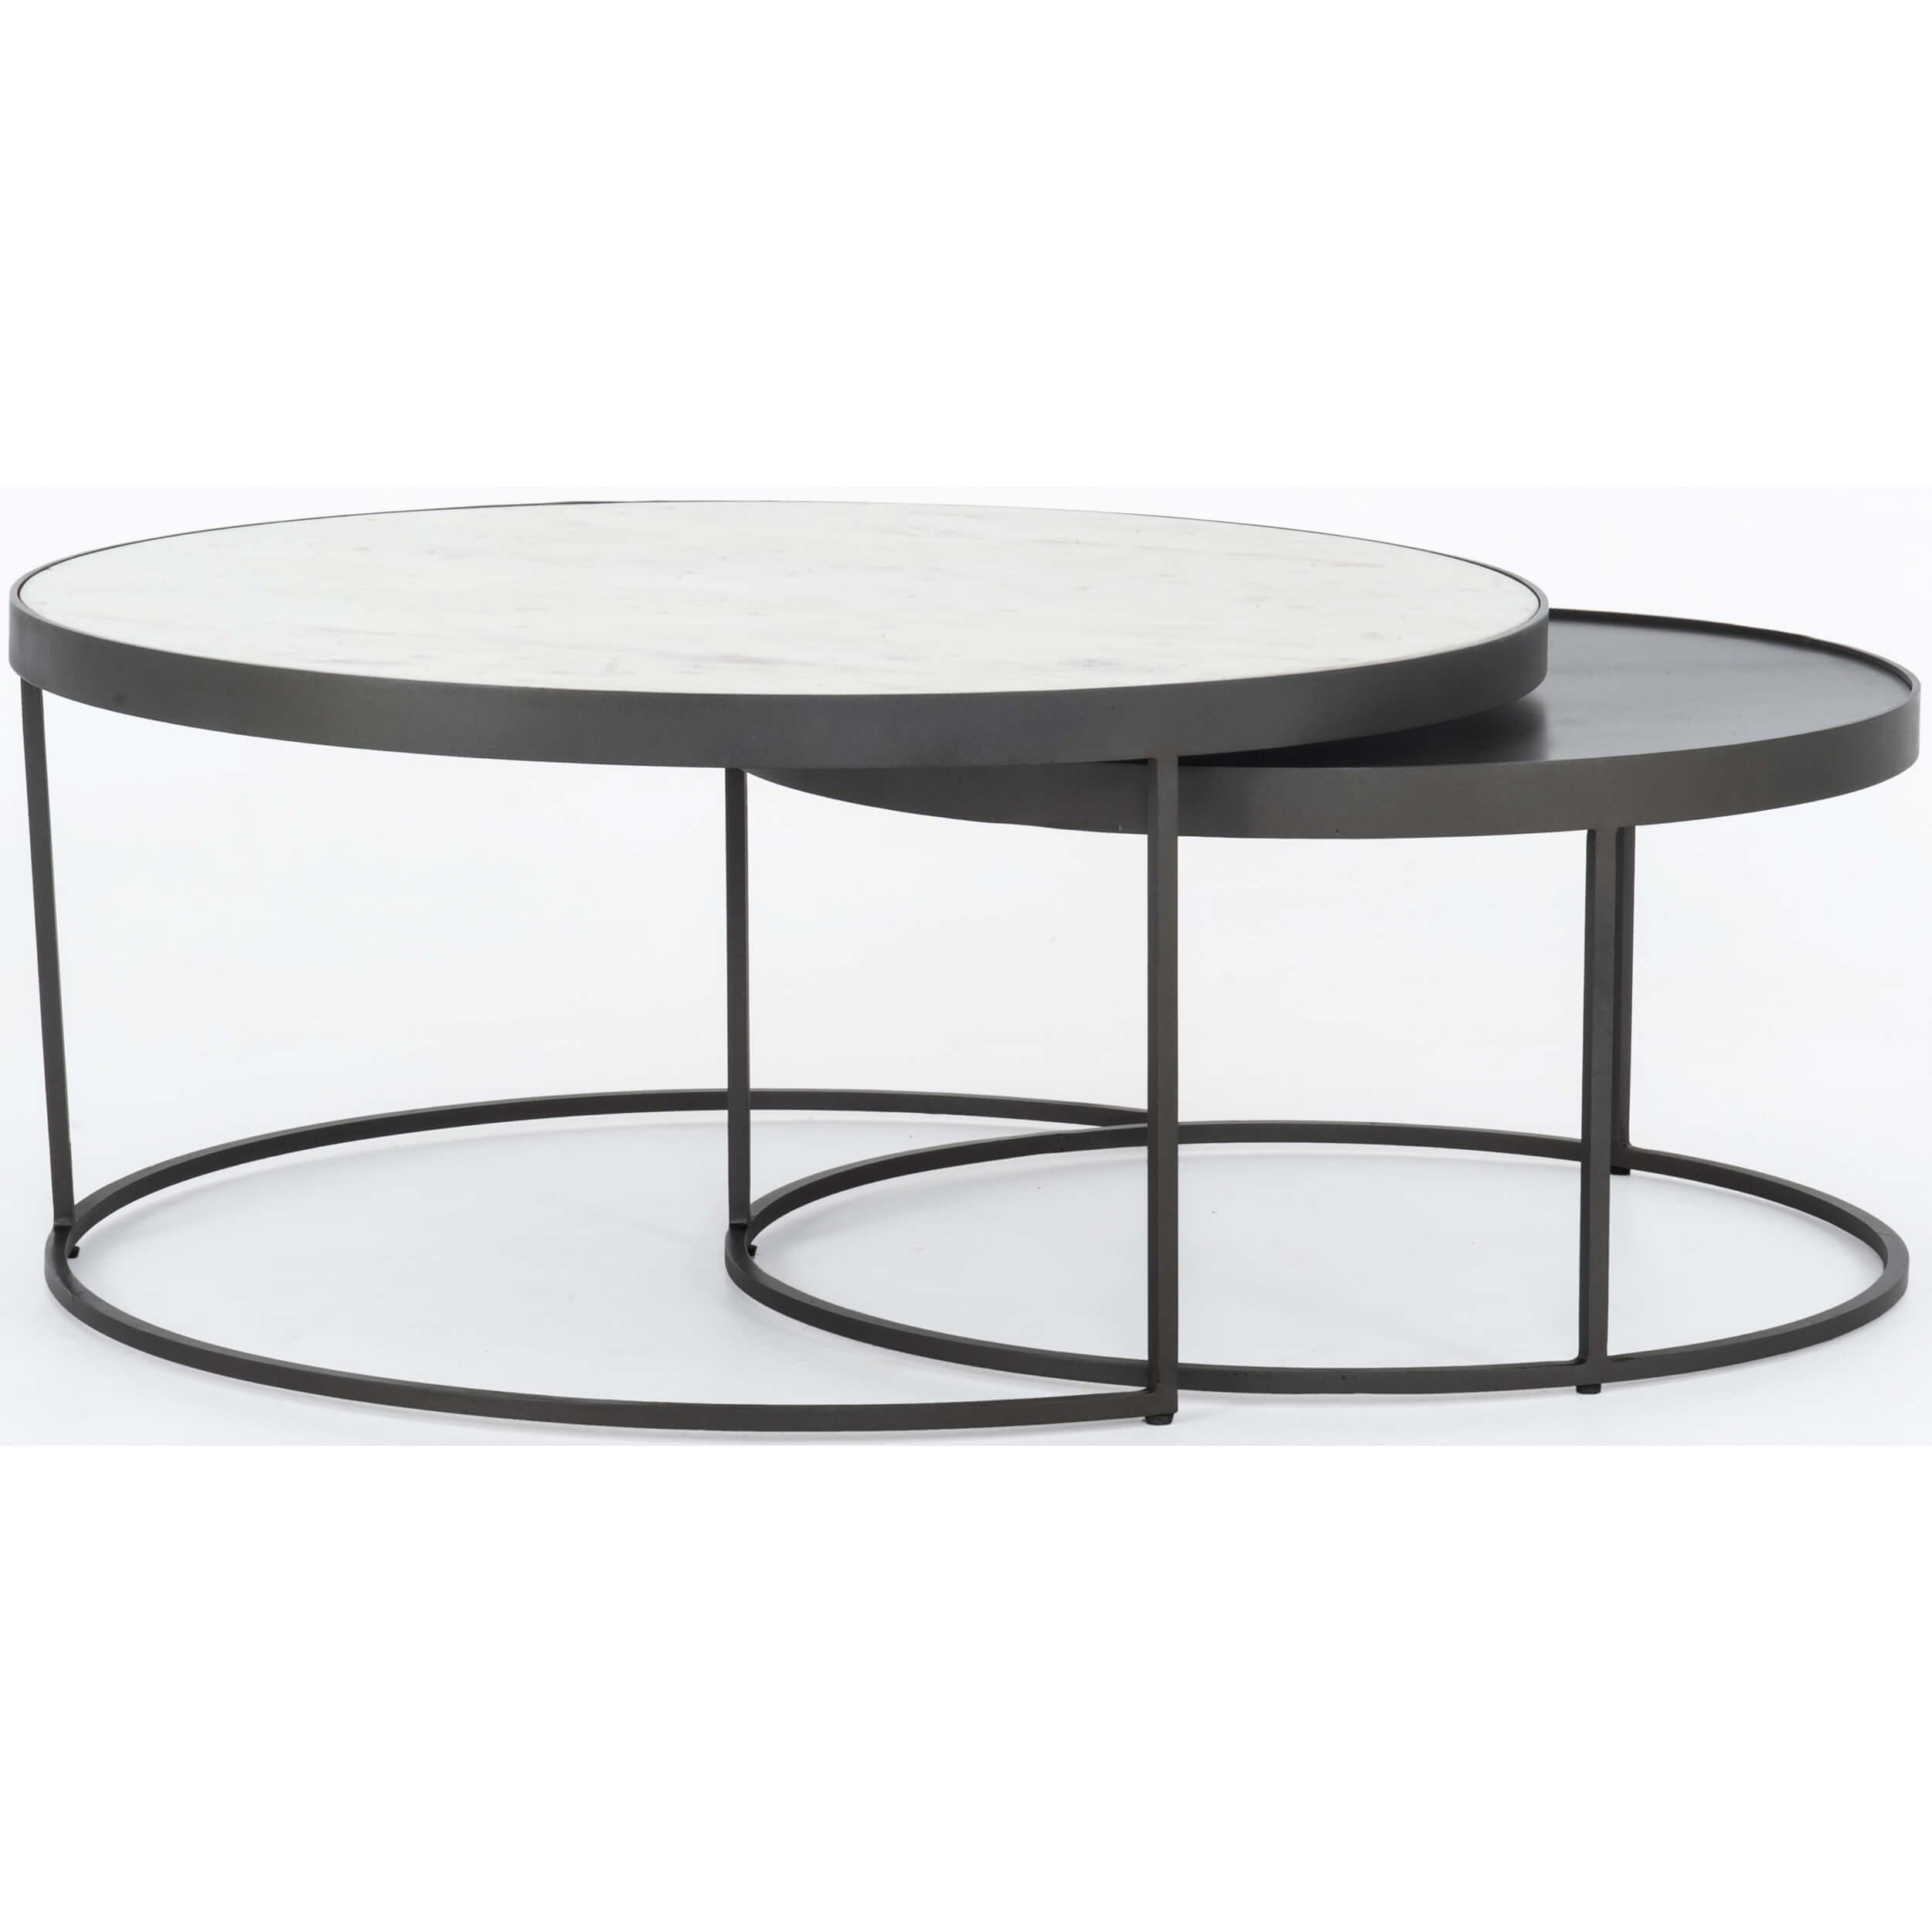 Evelyn Round Nesting Coffee Table In 2020 Nesting Coffee Tables Round Nesting Coffee Tables Coffee Table Metal Frame